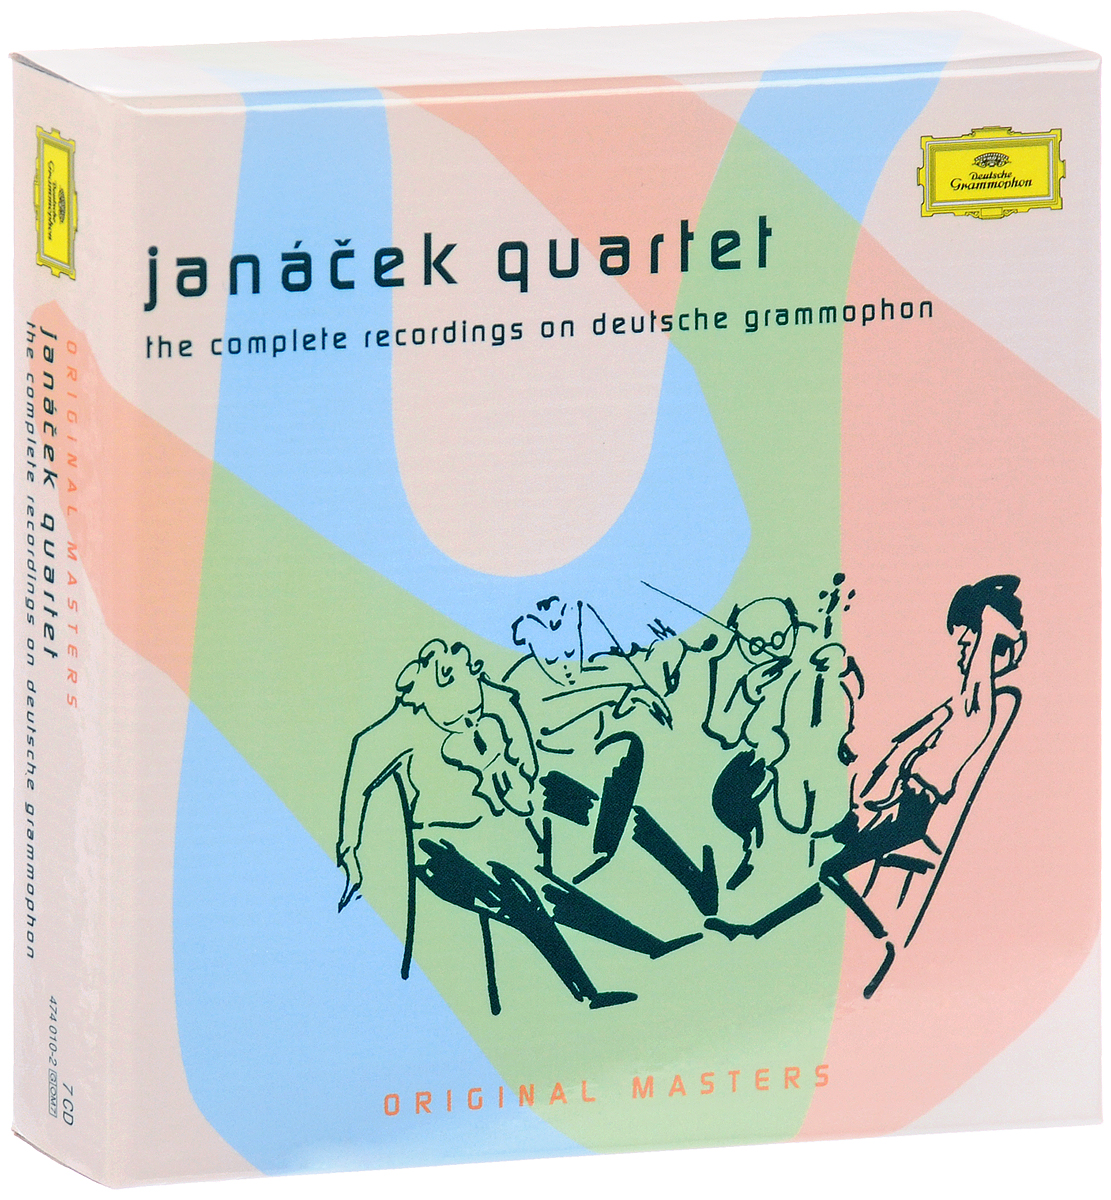 Janacek Quartett,Smetana Quartet,Ева Бернатова Janacek Quartet. The Complete Recordings (7 CD) magdalena kozena dvorak janacek martinu love songs